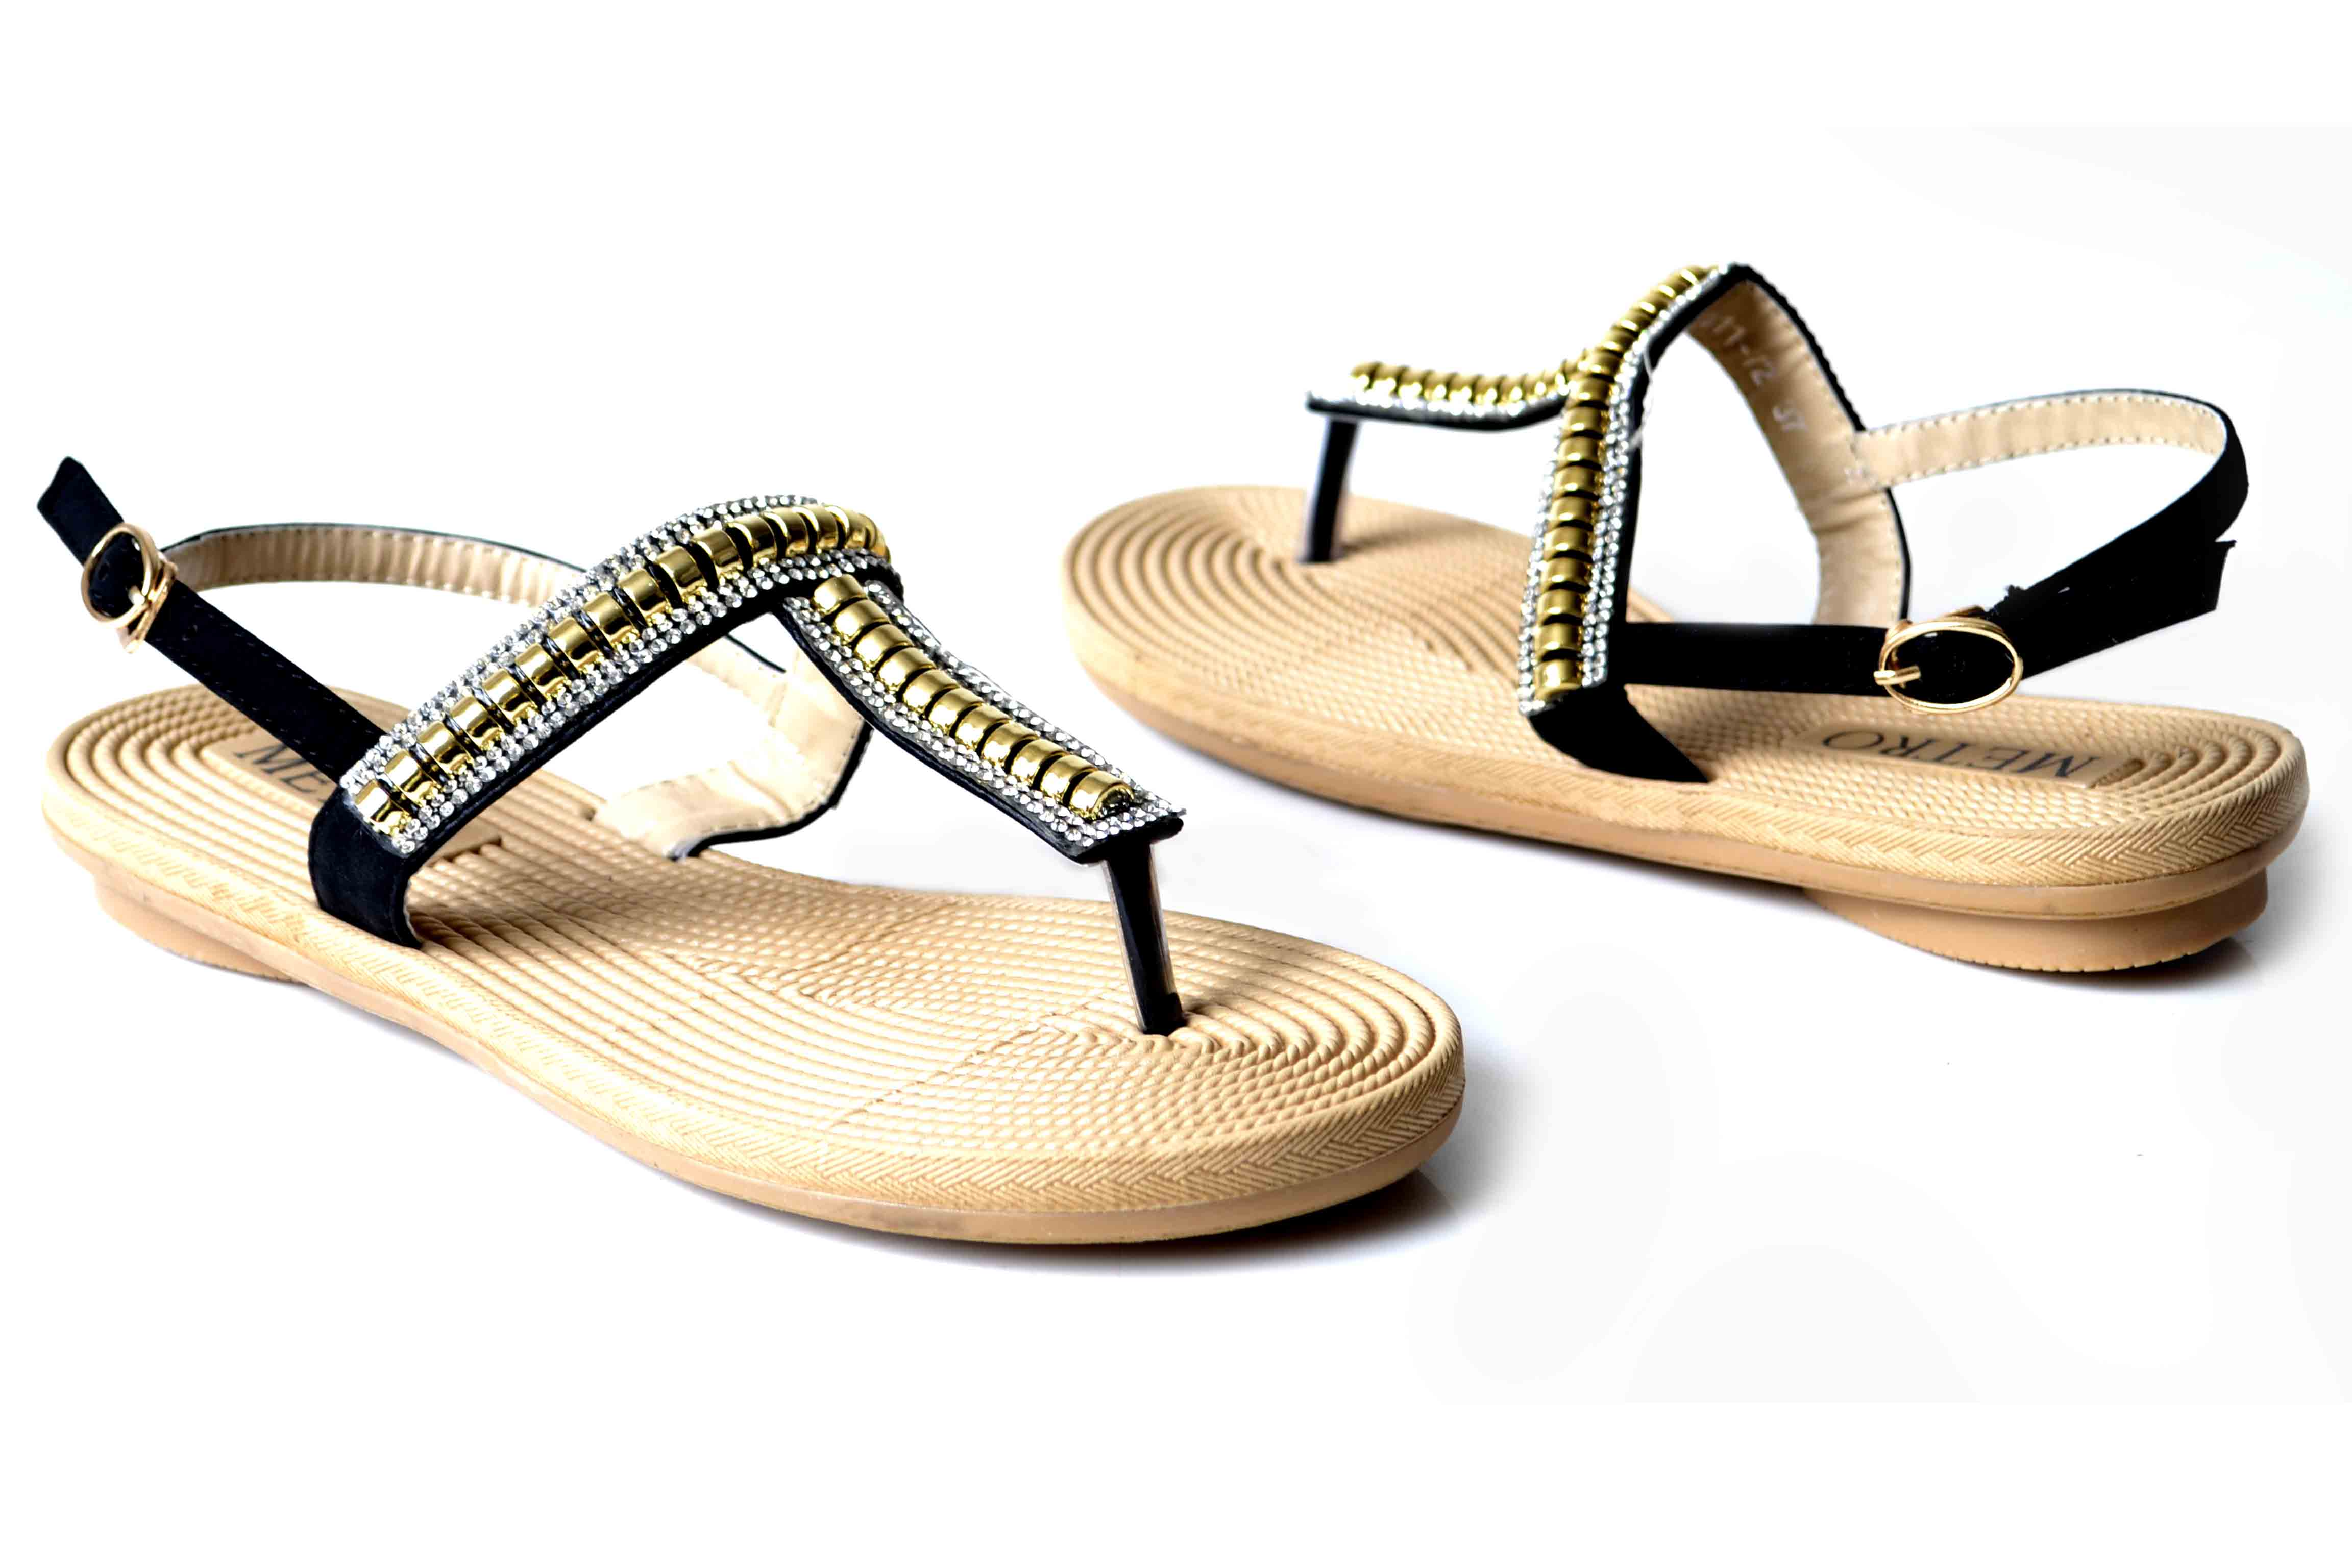 Metro-Shoes-Spring-Summer-Collection-2015-2016 (4)